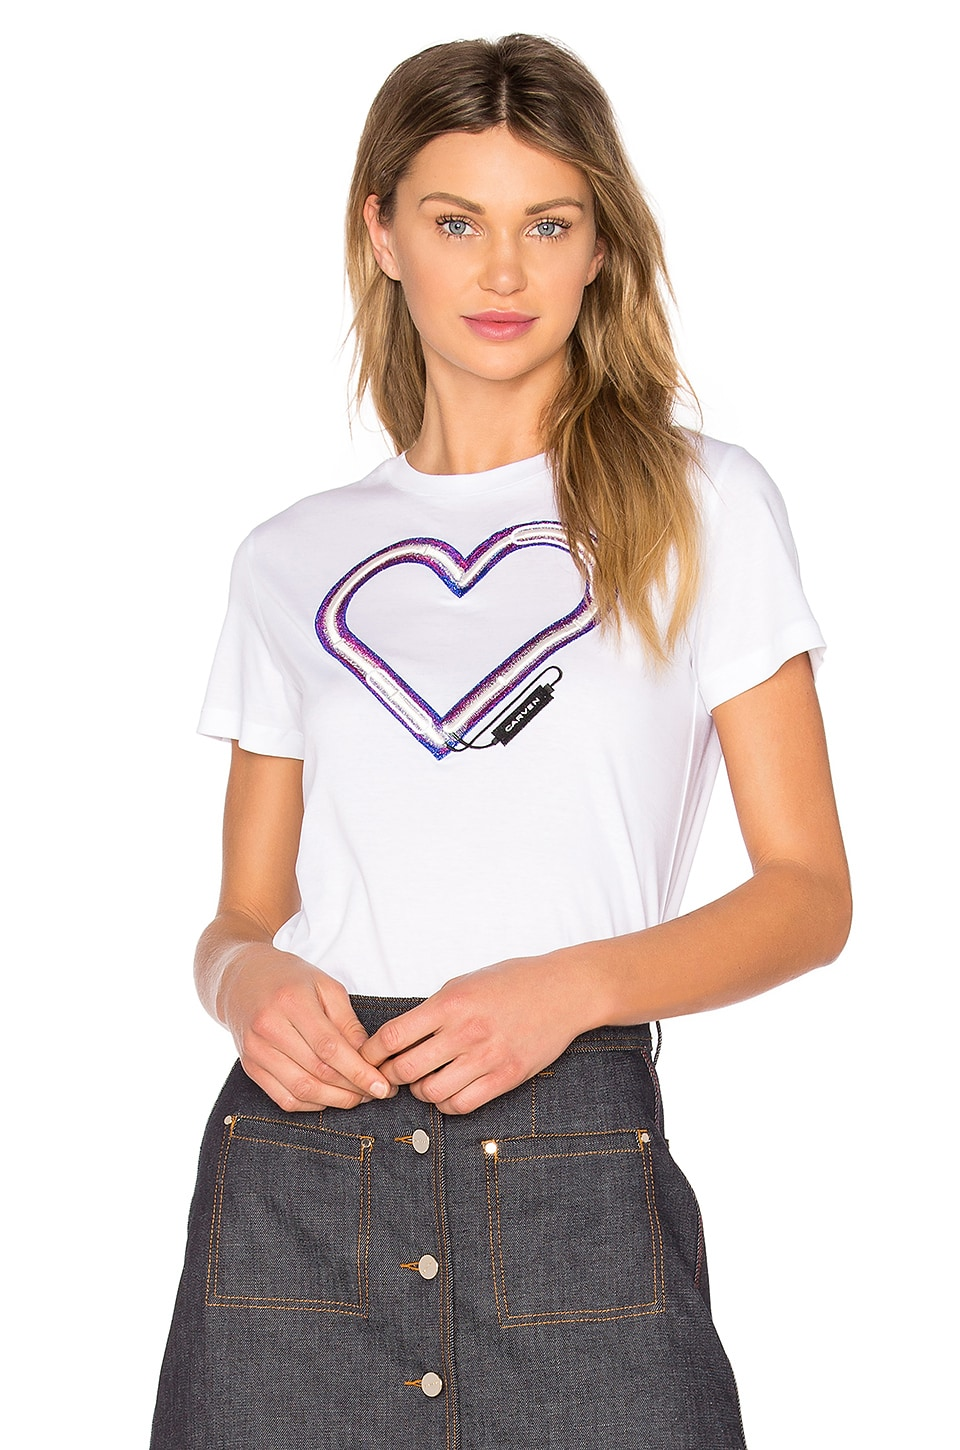 Tee by Carven